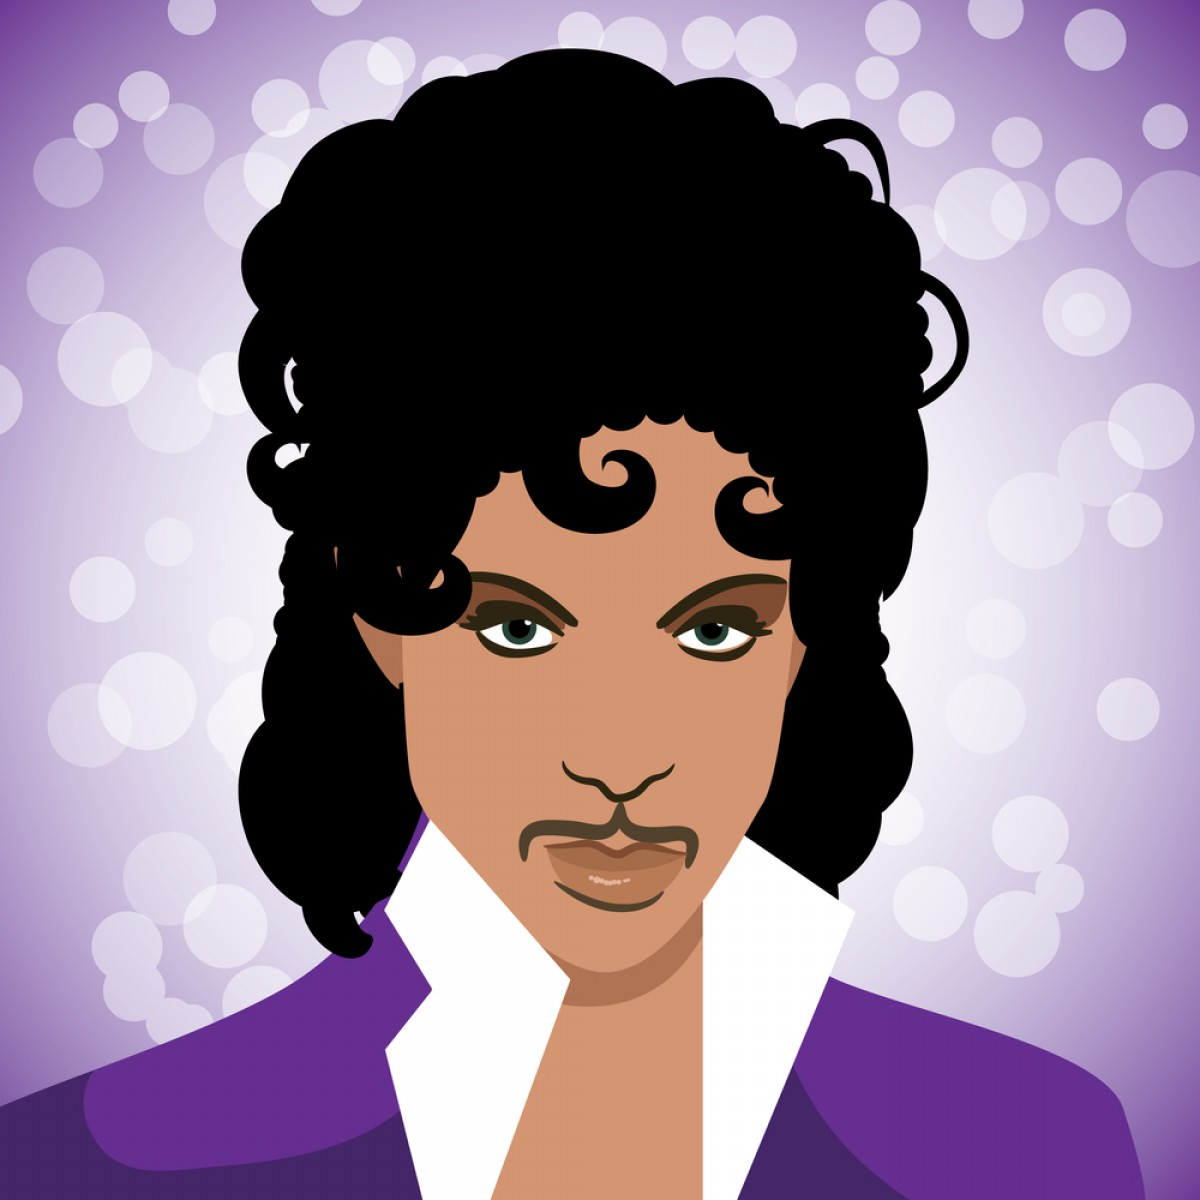 Singer Prince Symbol Vector: Prince Estate Strikes Merchandise Deal With Minnesota Twins